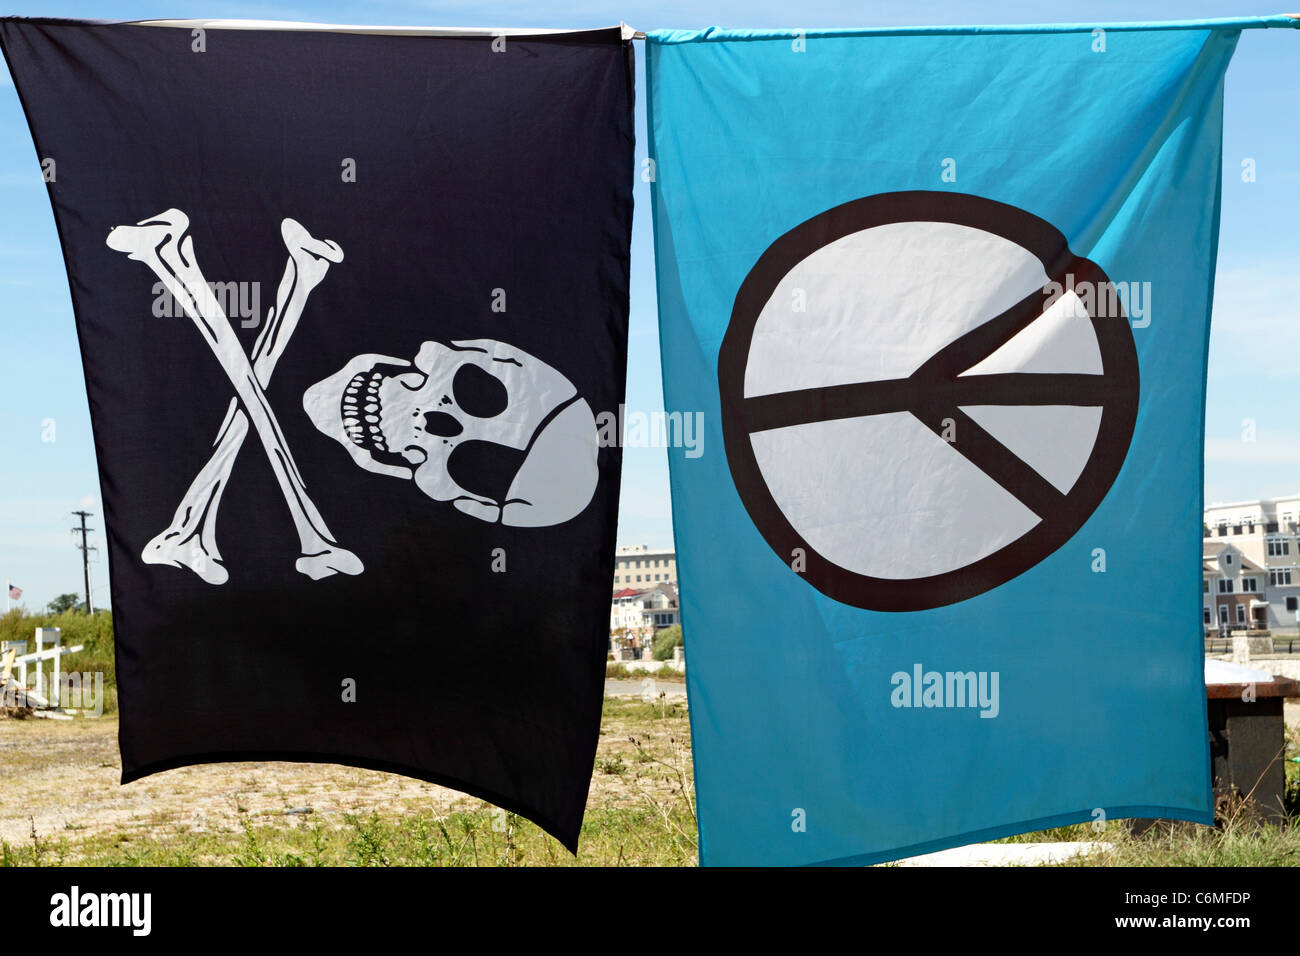 A Jolly Roger pirate banner and a Peace Sign banner flying next to each other amid a row of banners Stock Photo